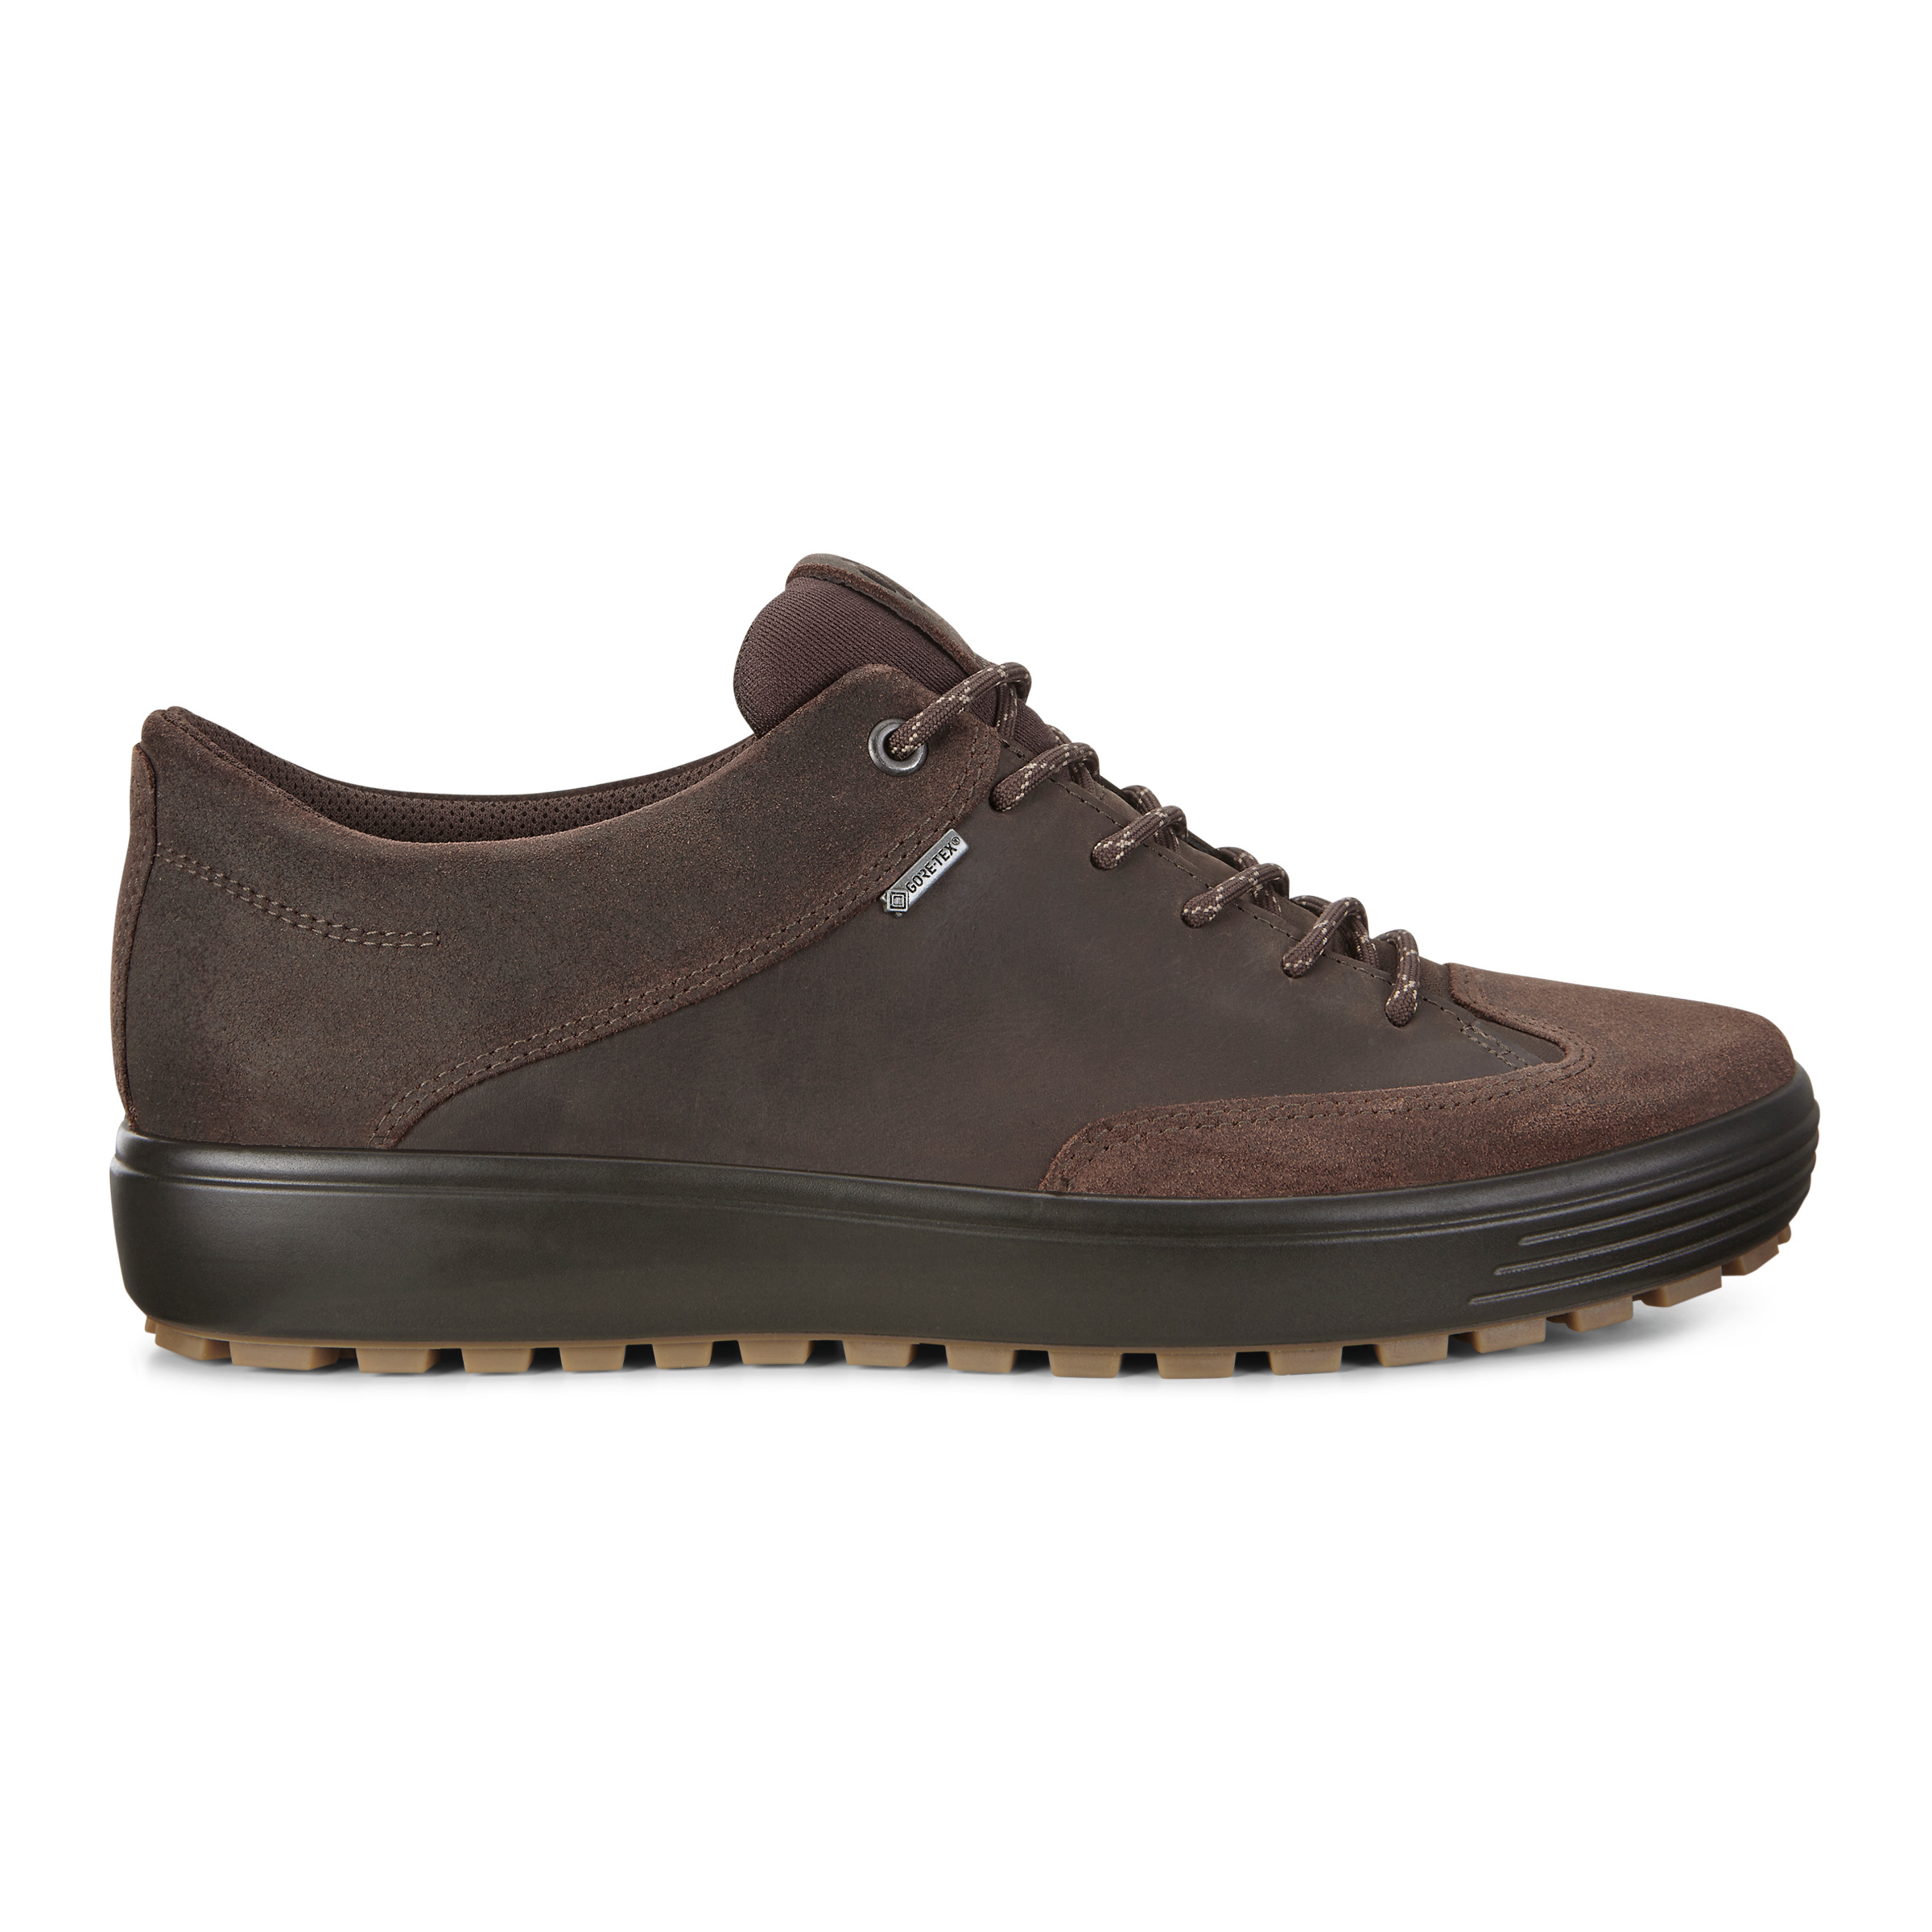 ECCO Mens Soft 7 Tred Gtx Tie Sneakers Size 9-9.5 Coffee